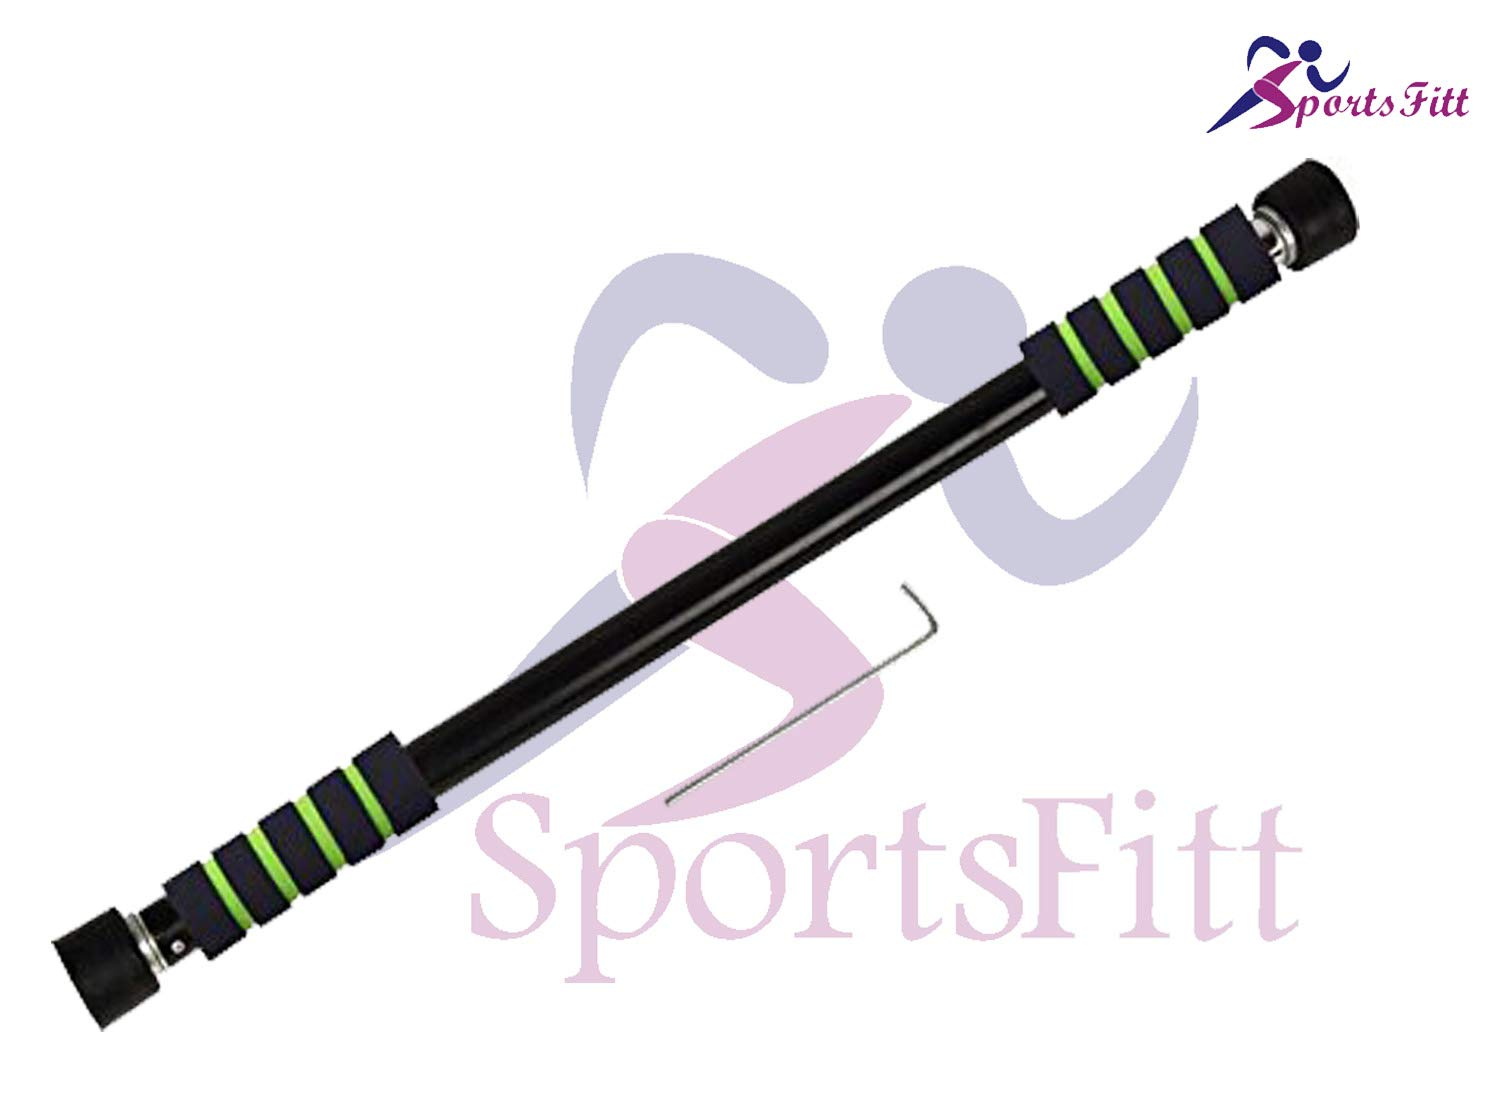 SportsFitt Steel Bar Chin-Up Bar